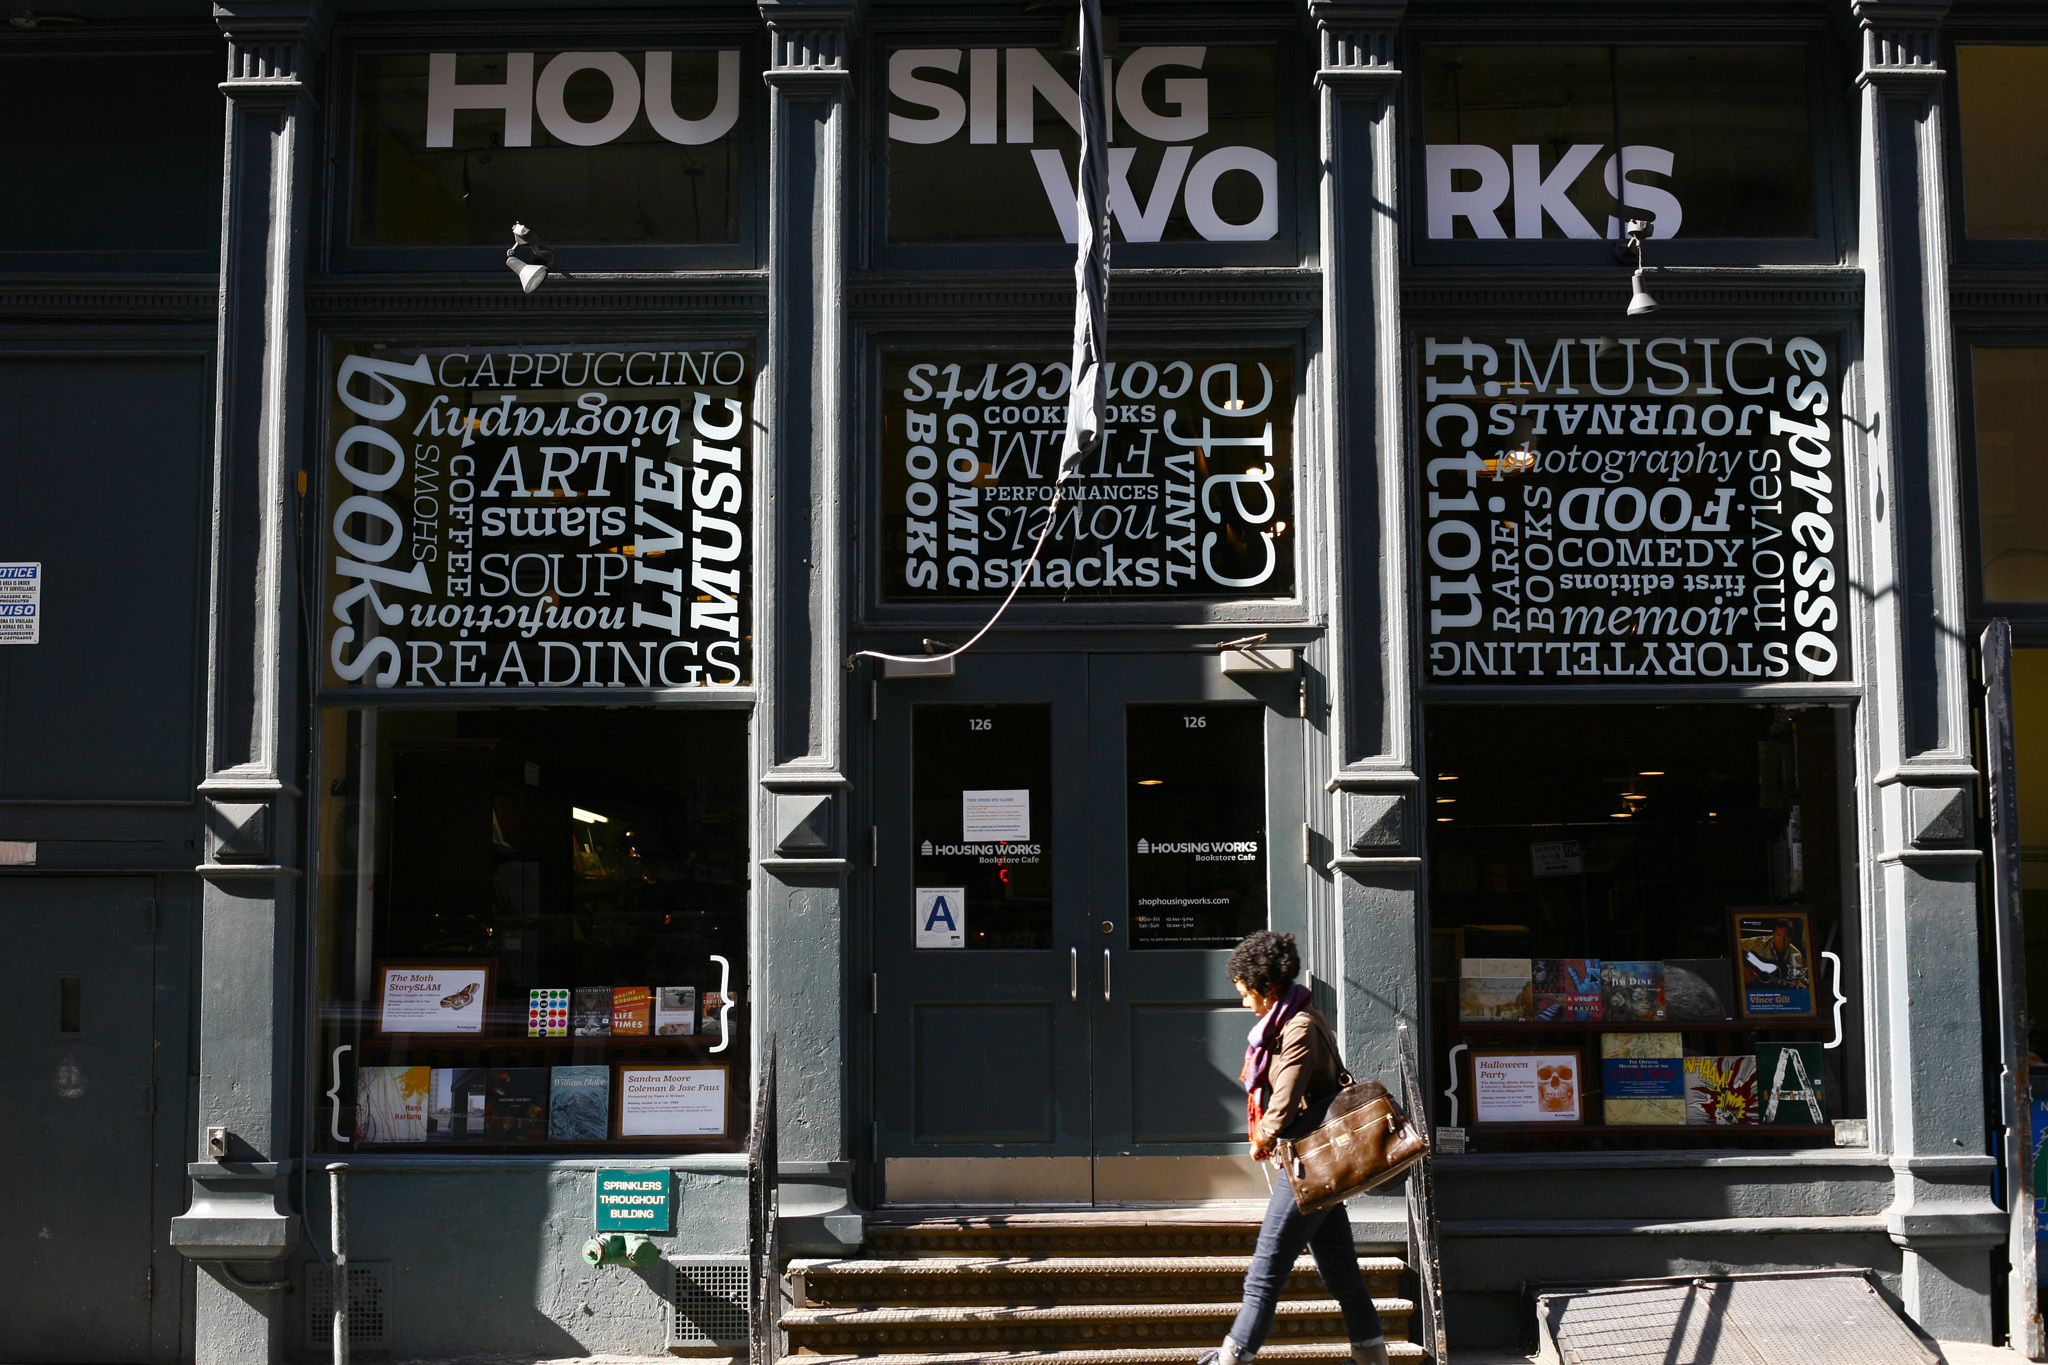 Grab a book at Housing Works Bookstore Café